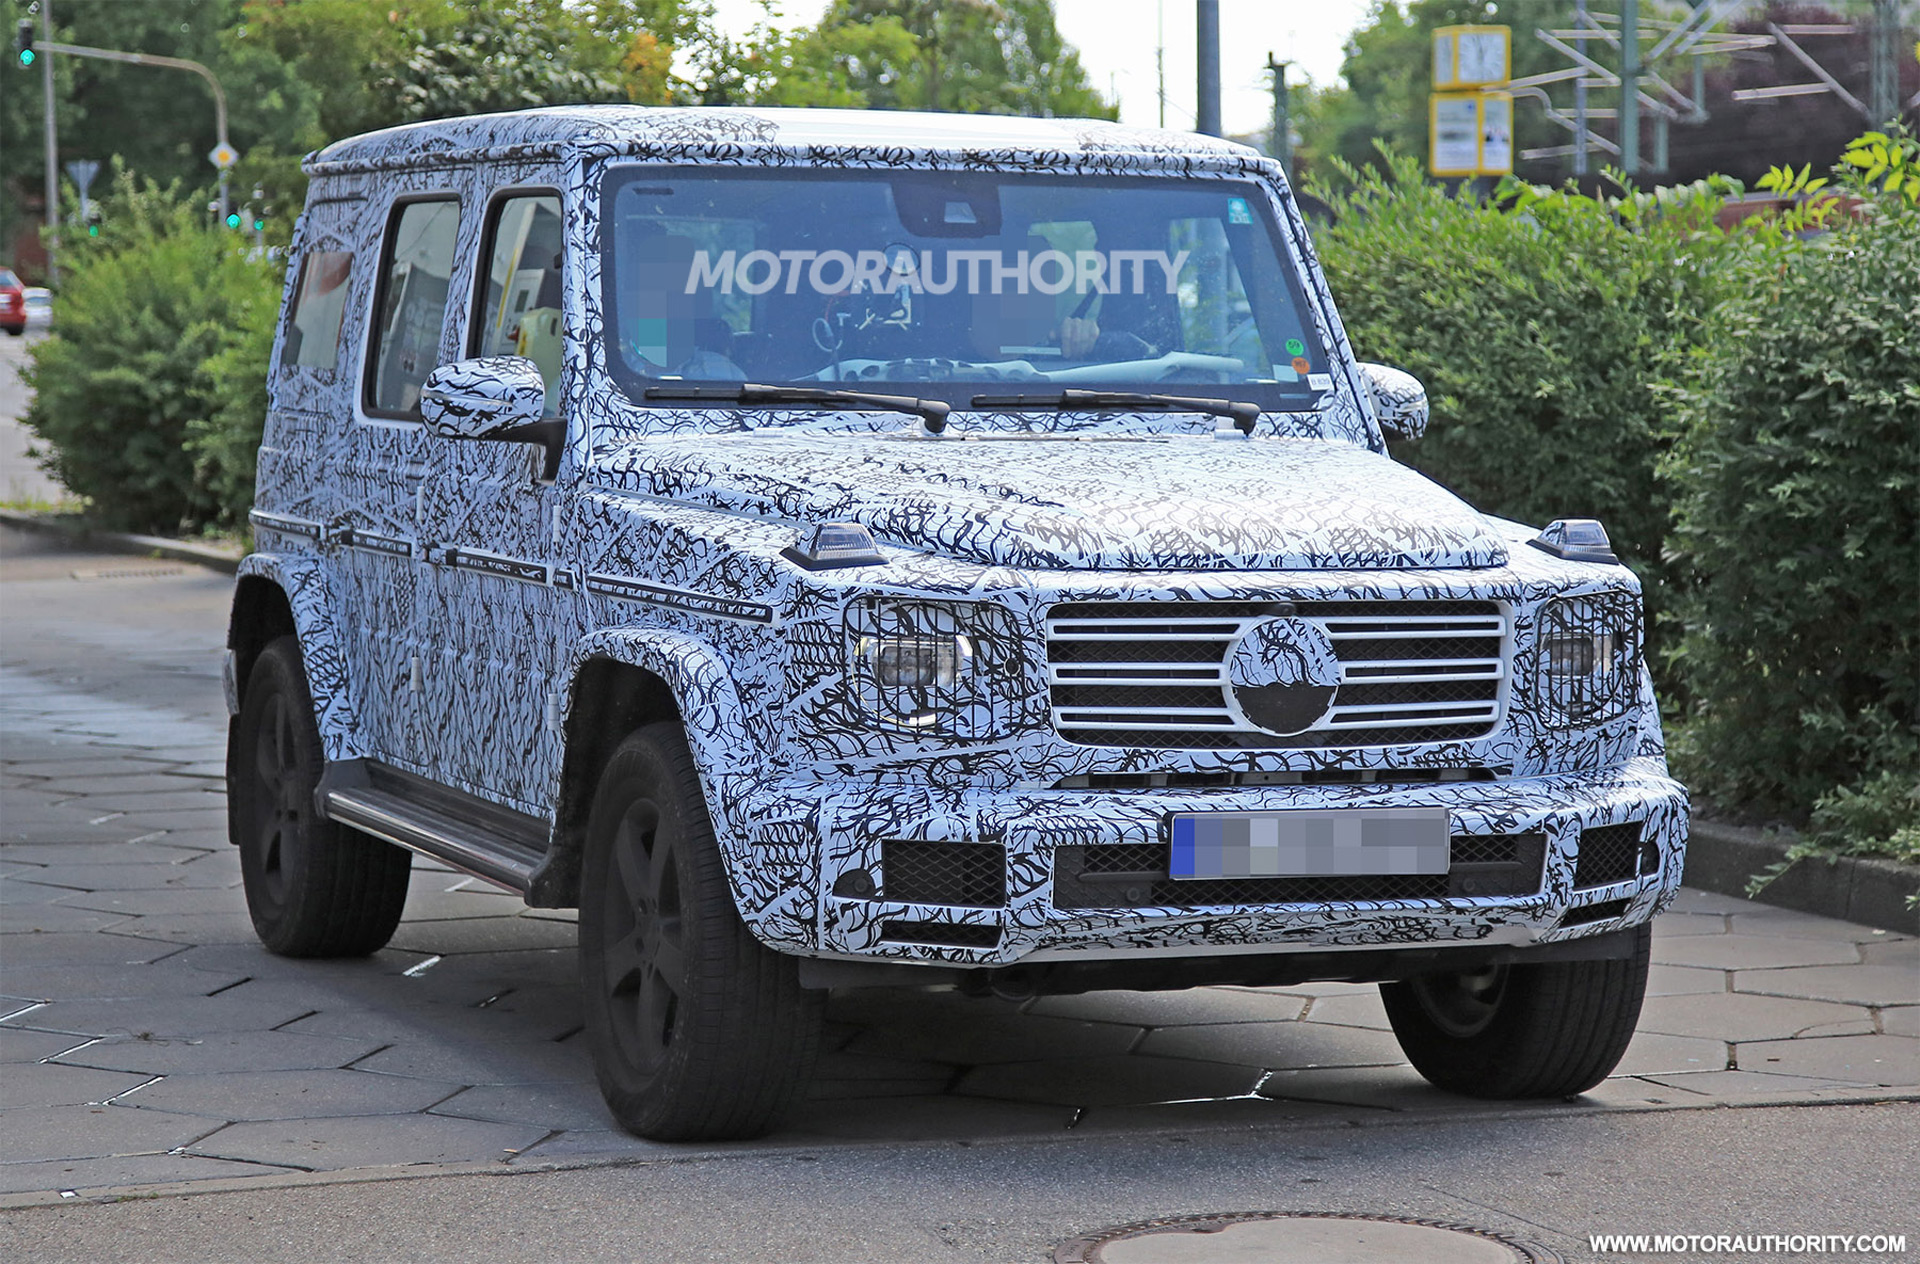 Mercedes Benz Of Chicago >> 2019 Mercedes-Benz G-Class spy shots and video